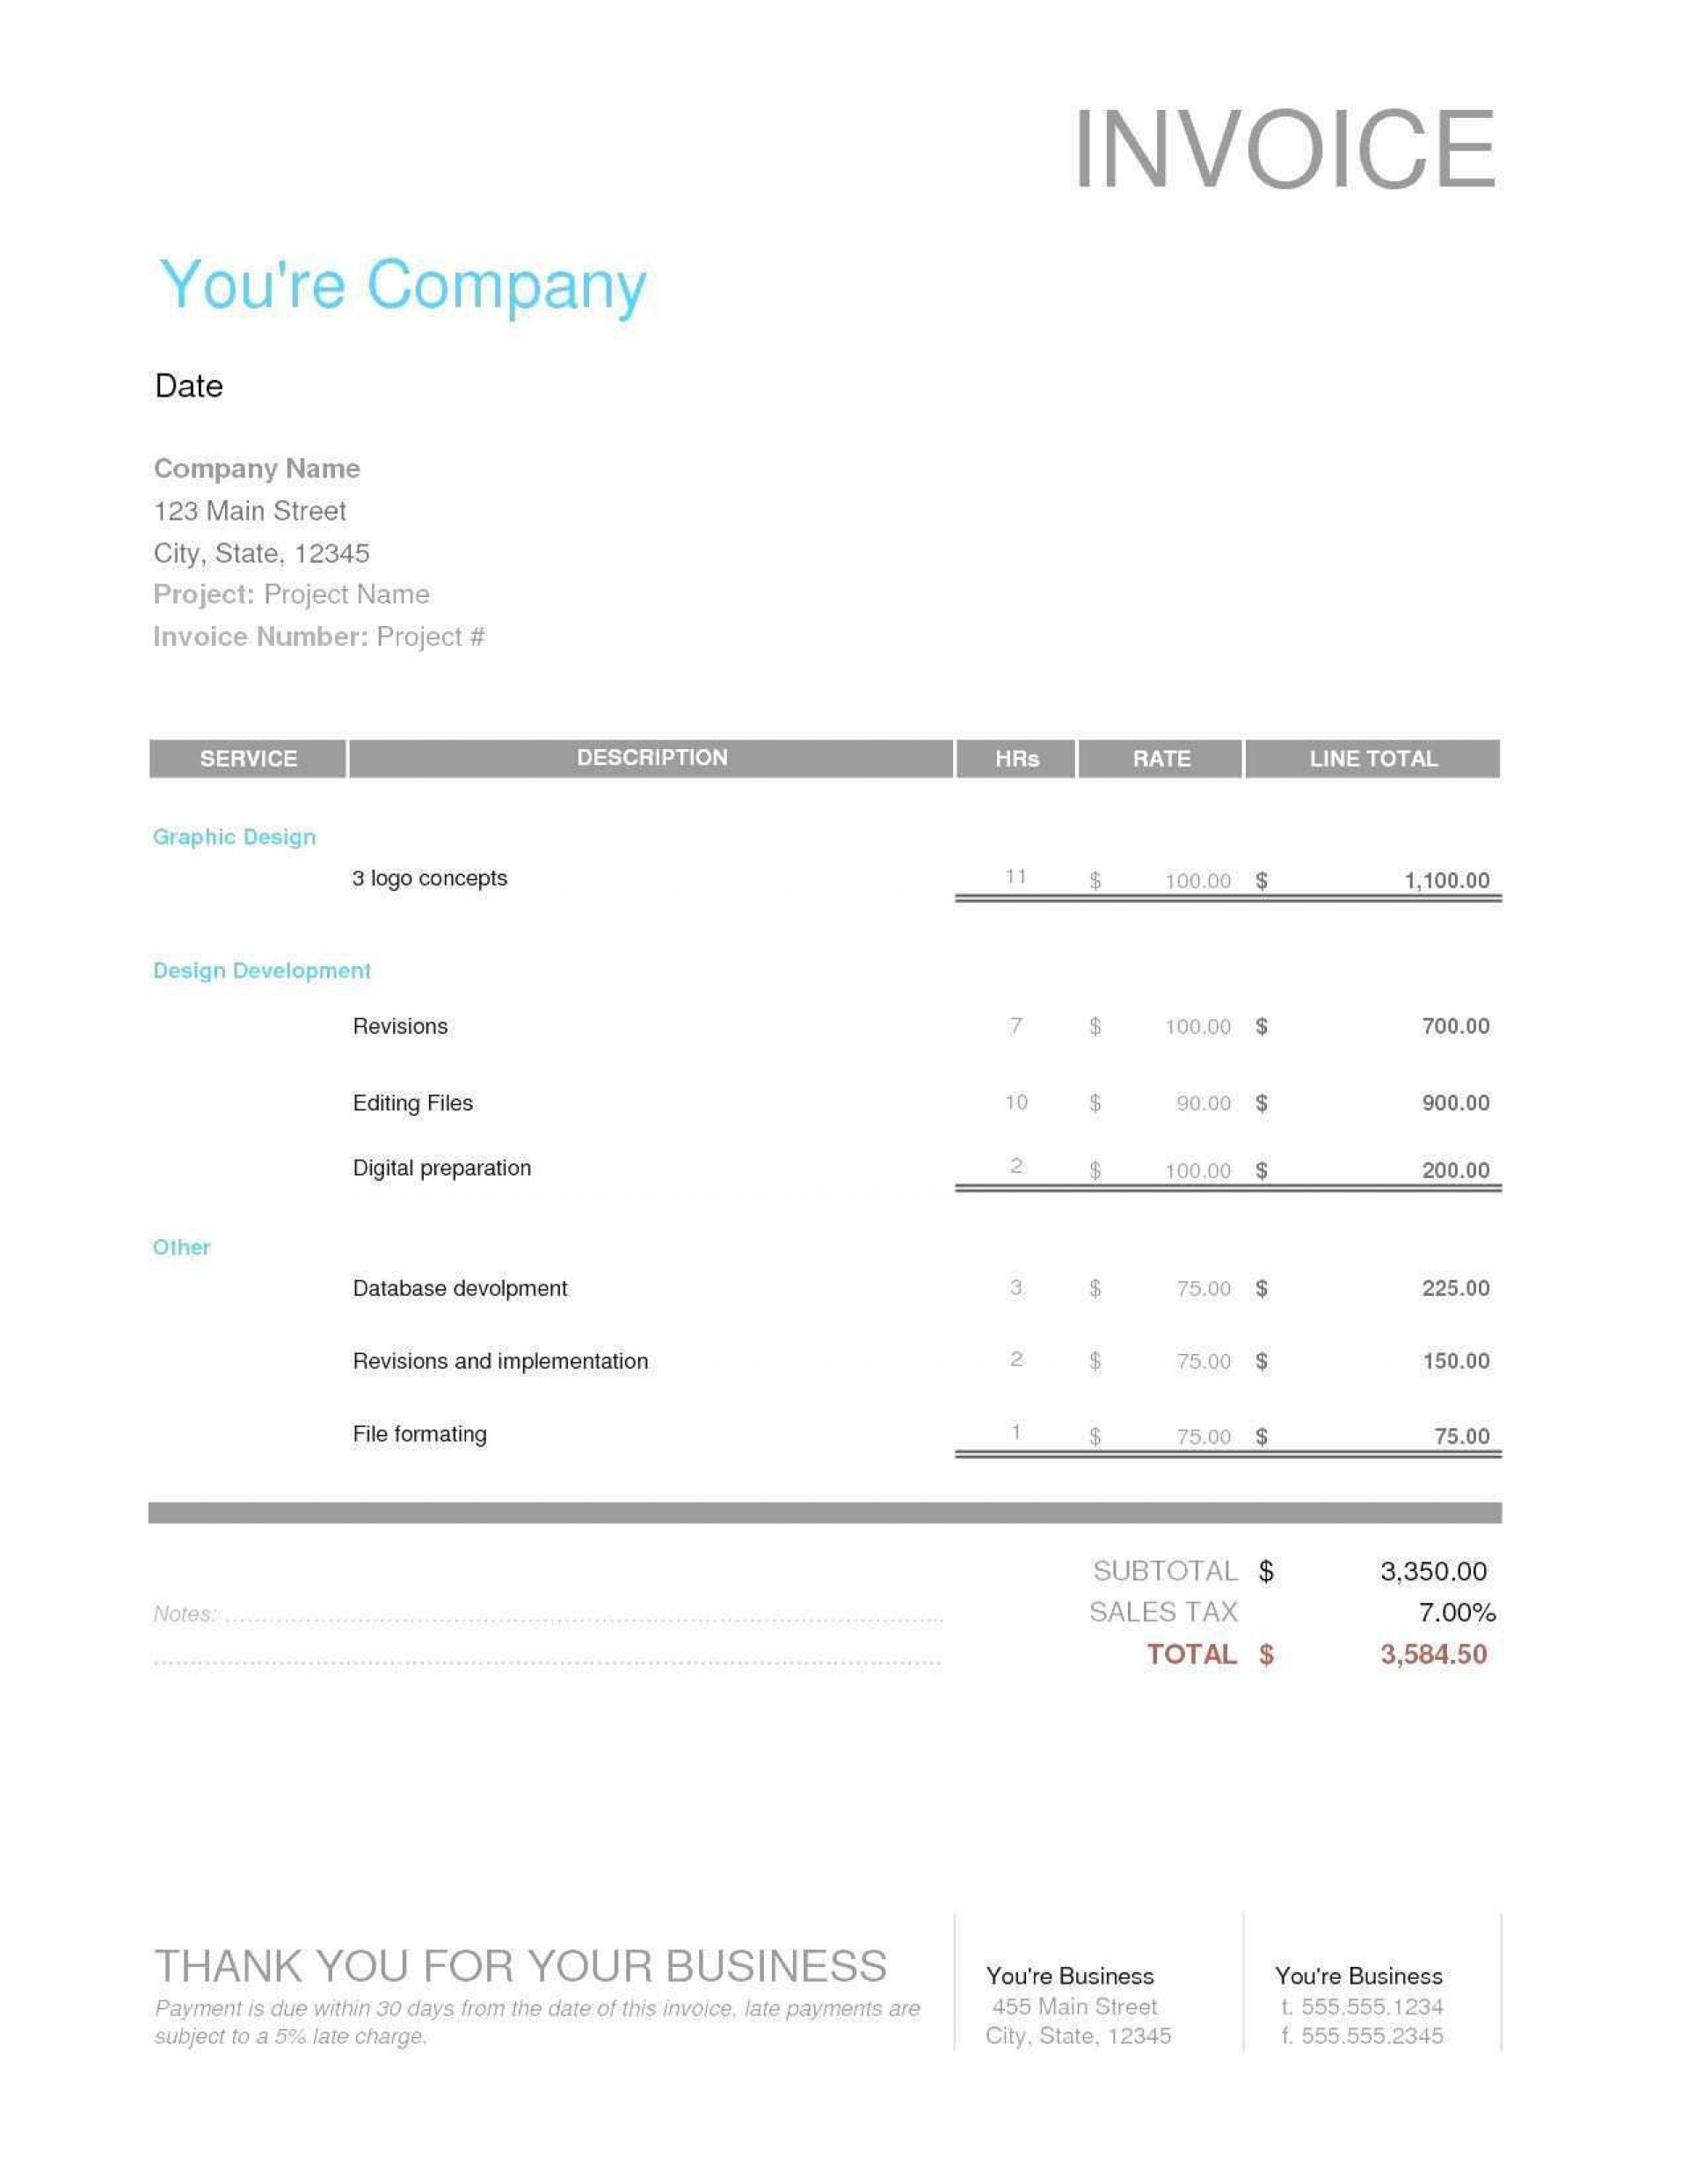 003 Stunning Freelance Creative Invoice Template Concept  Graphic Designer Uk Simple1920